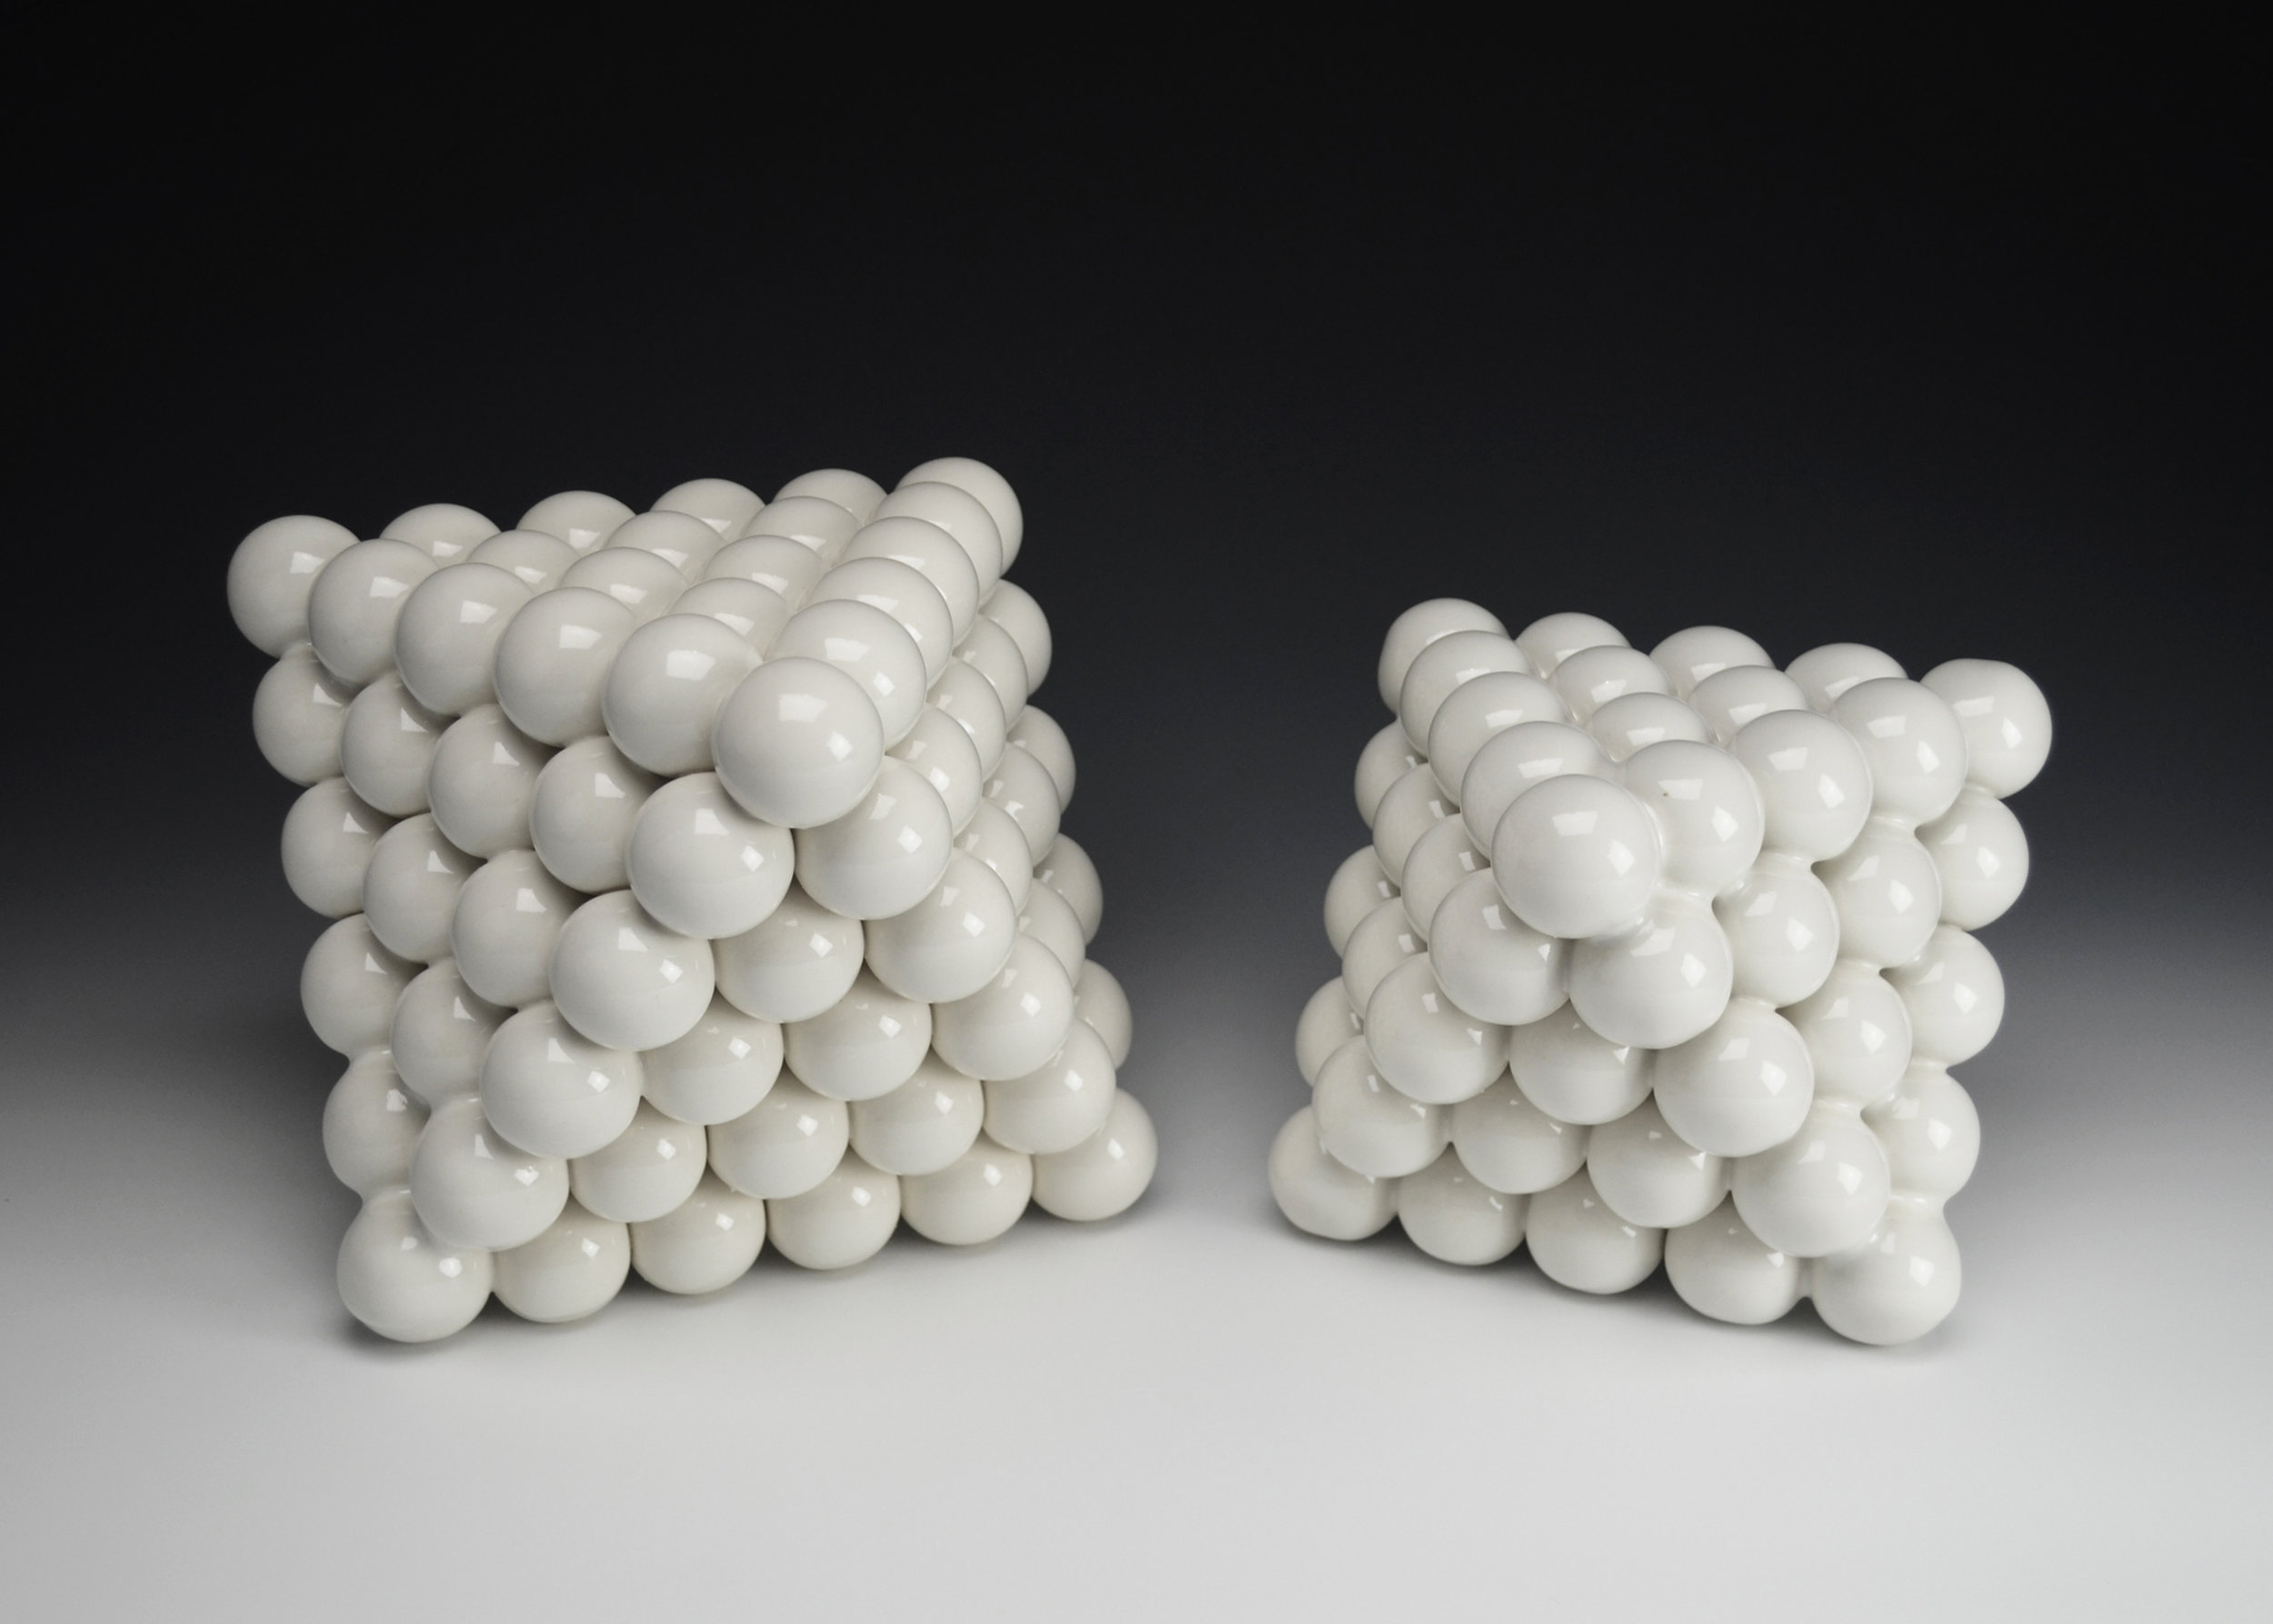 Ionic Series: Octahedrons  |  Left: 8 x 8 x 12 inches, Right:  6.5 x 6.5 x 9 inches  |  Porcelain, Glaze  |  2017